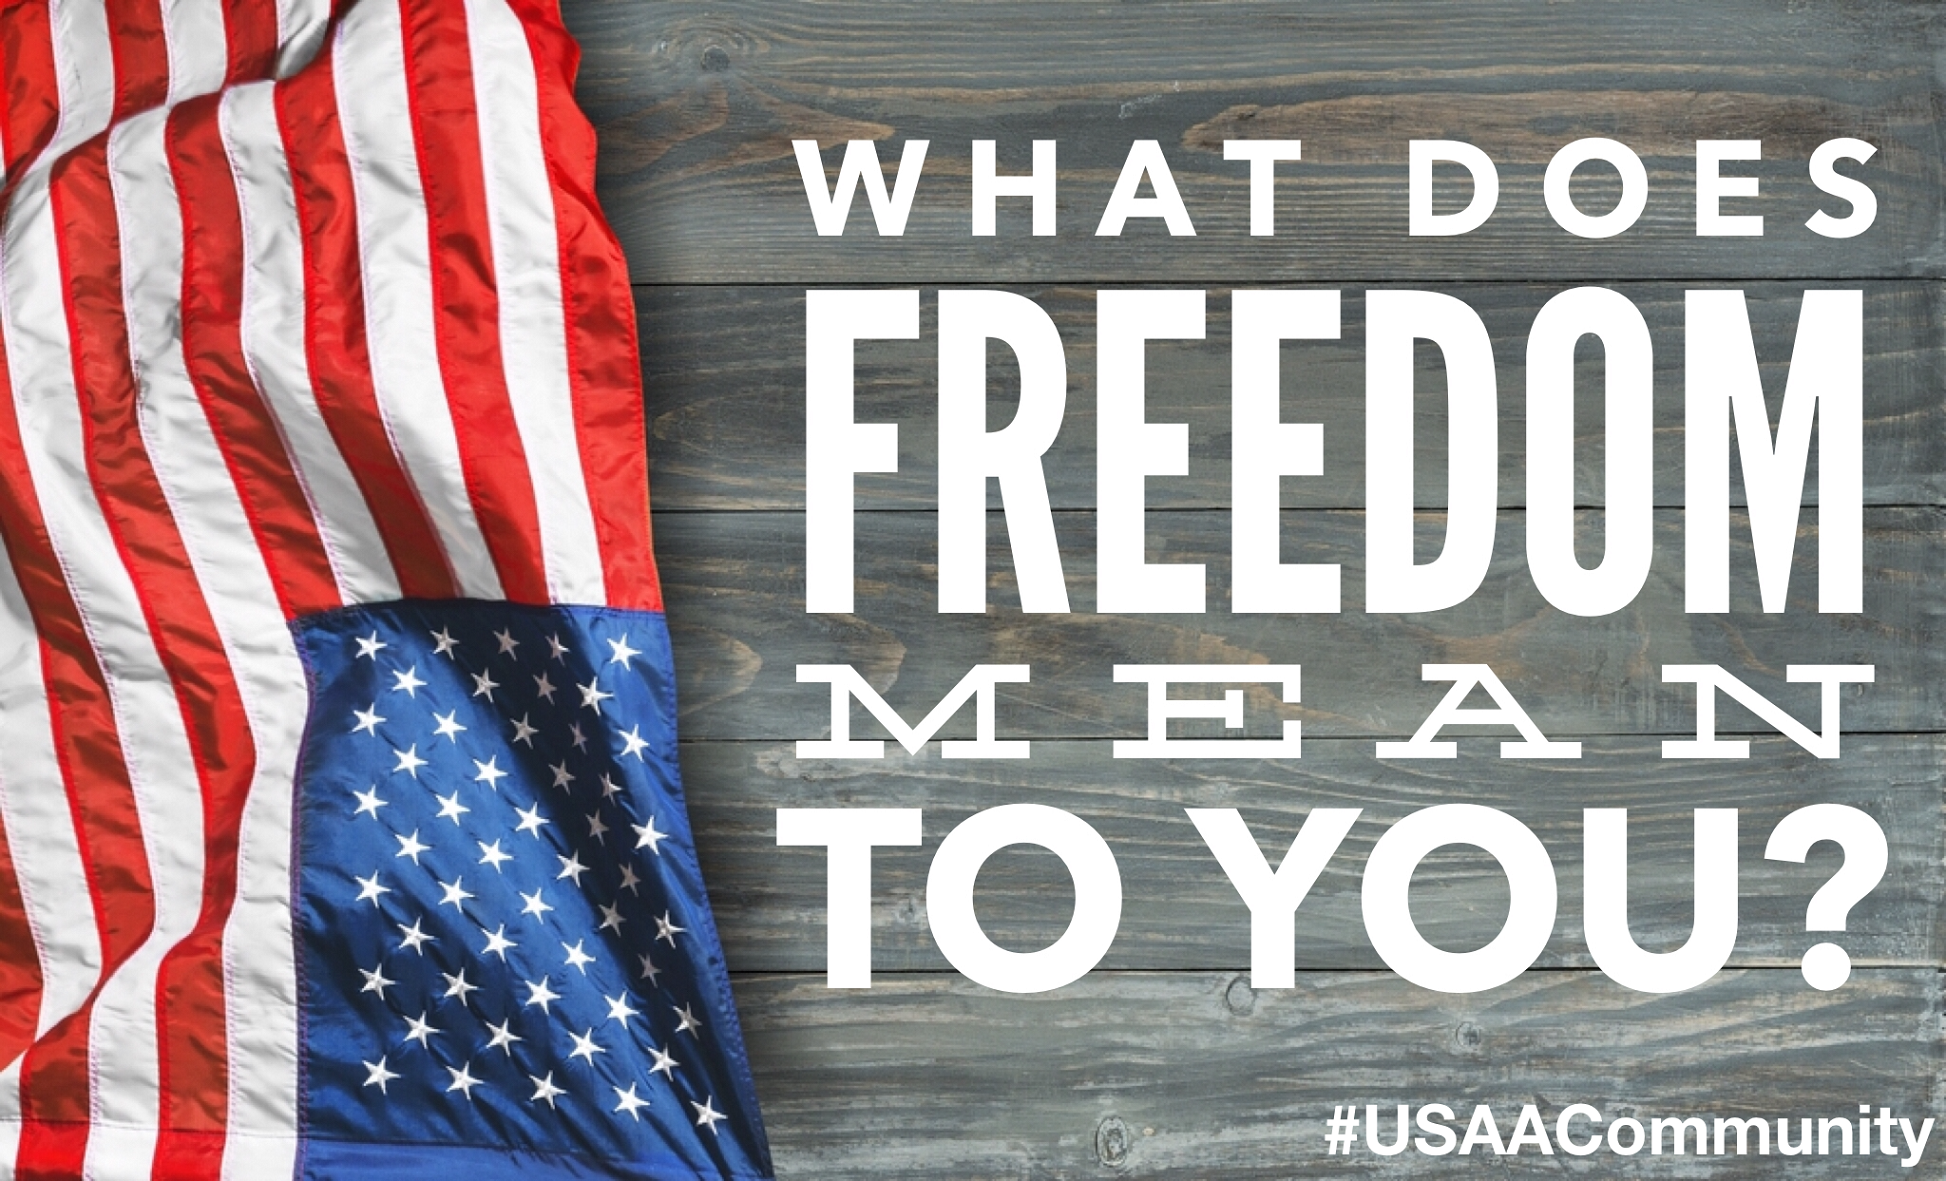 USAA-Member-Community-What-Does-Freedom-Mean-small.png